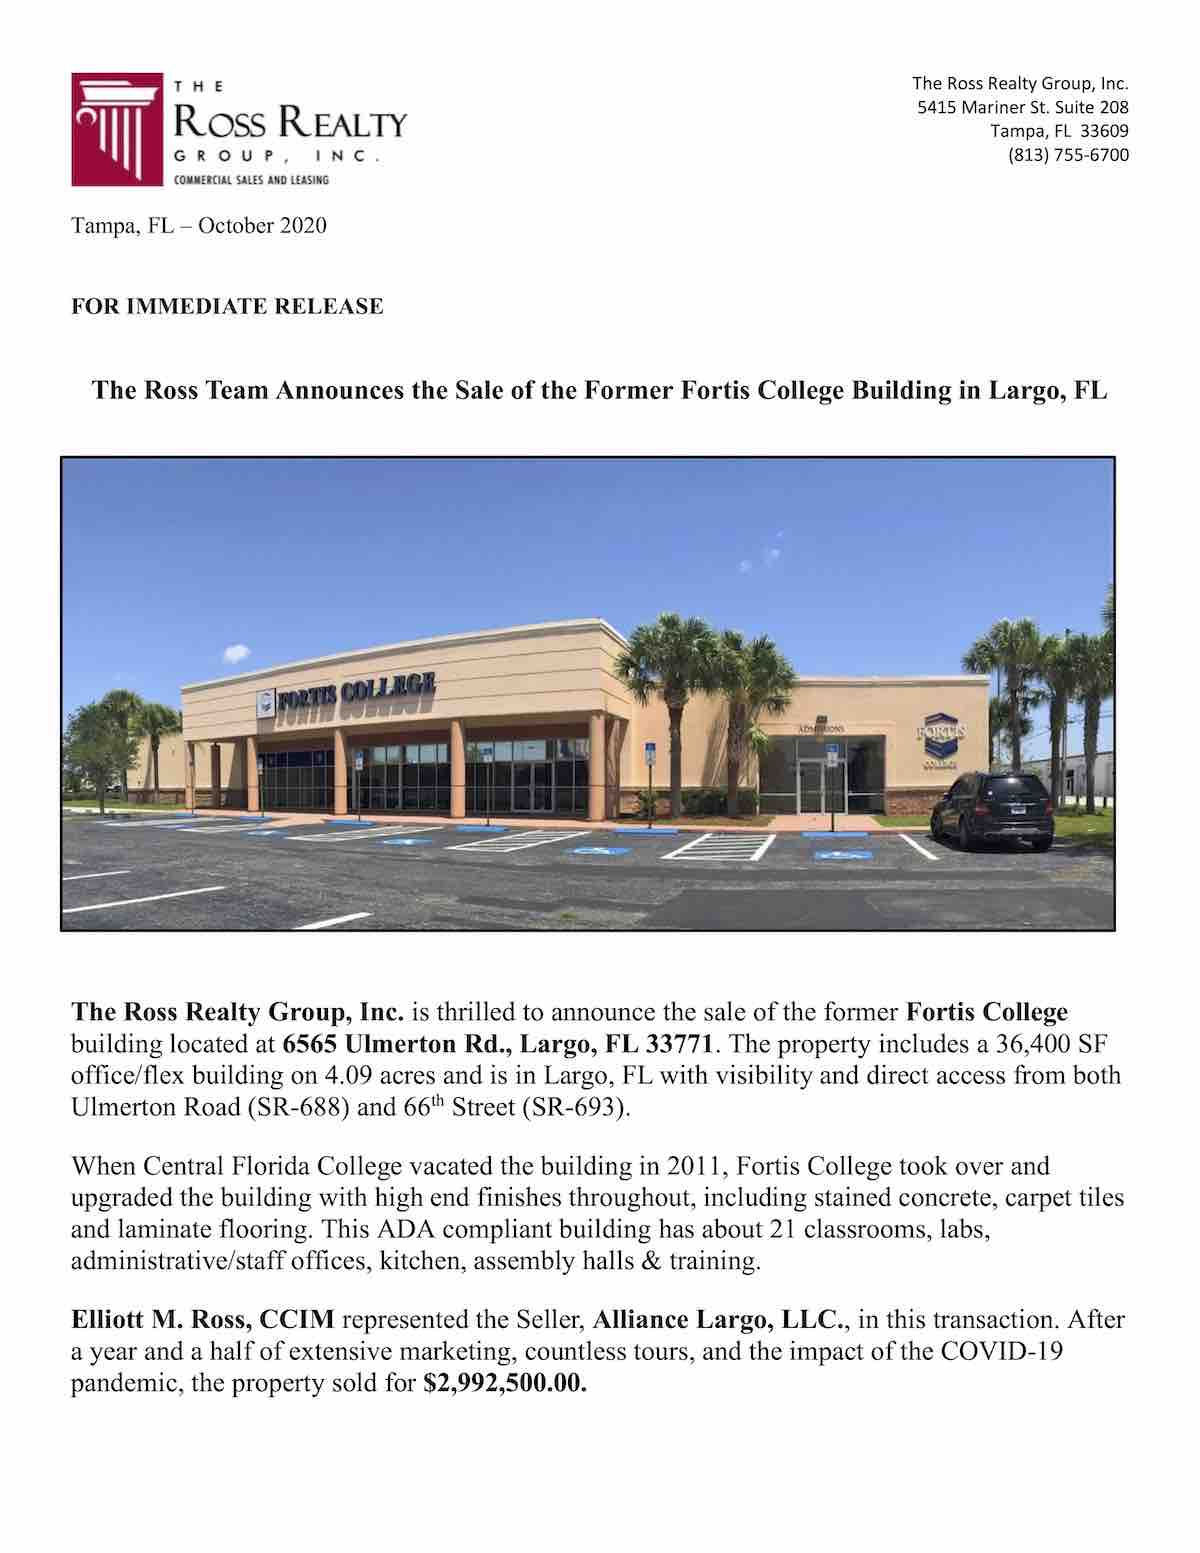 Tampa Commercial Real Estate - Fortis College 6565 Ulmerton Rd., Largo, FL 33771 P1